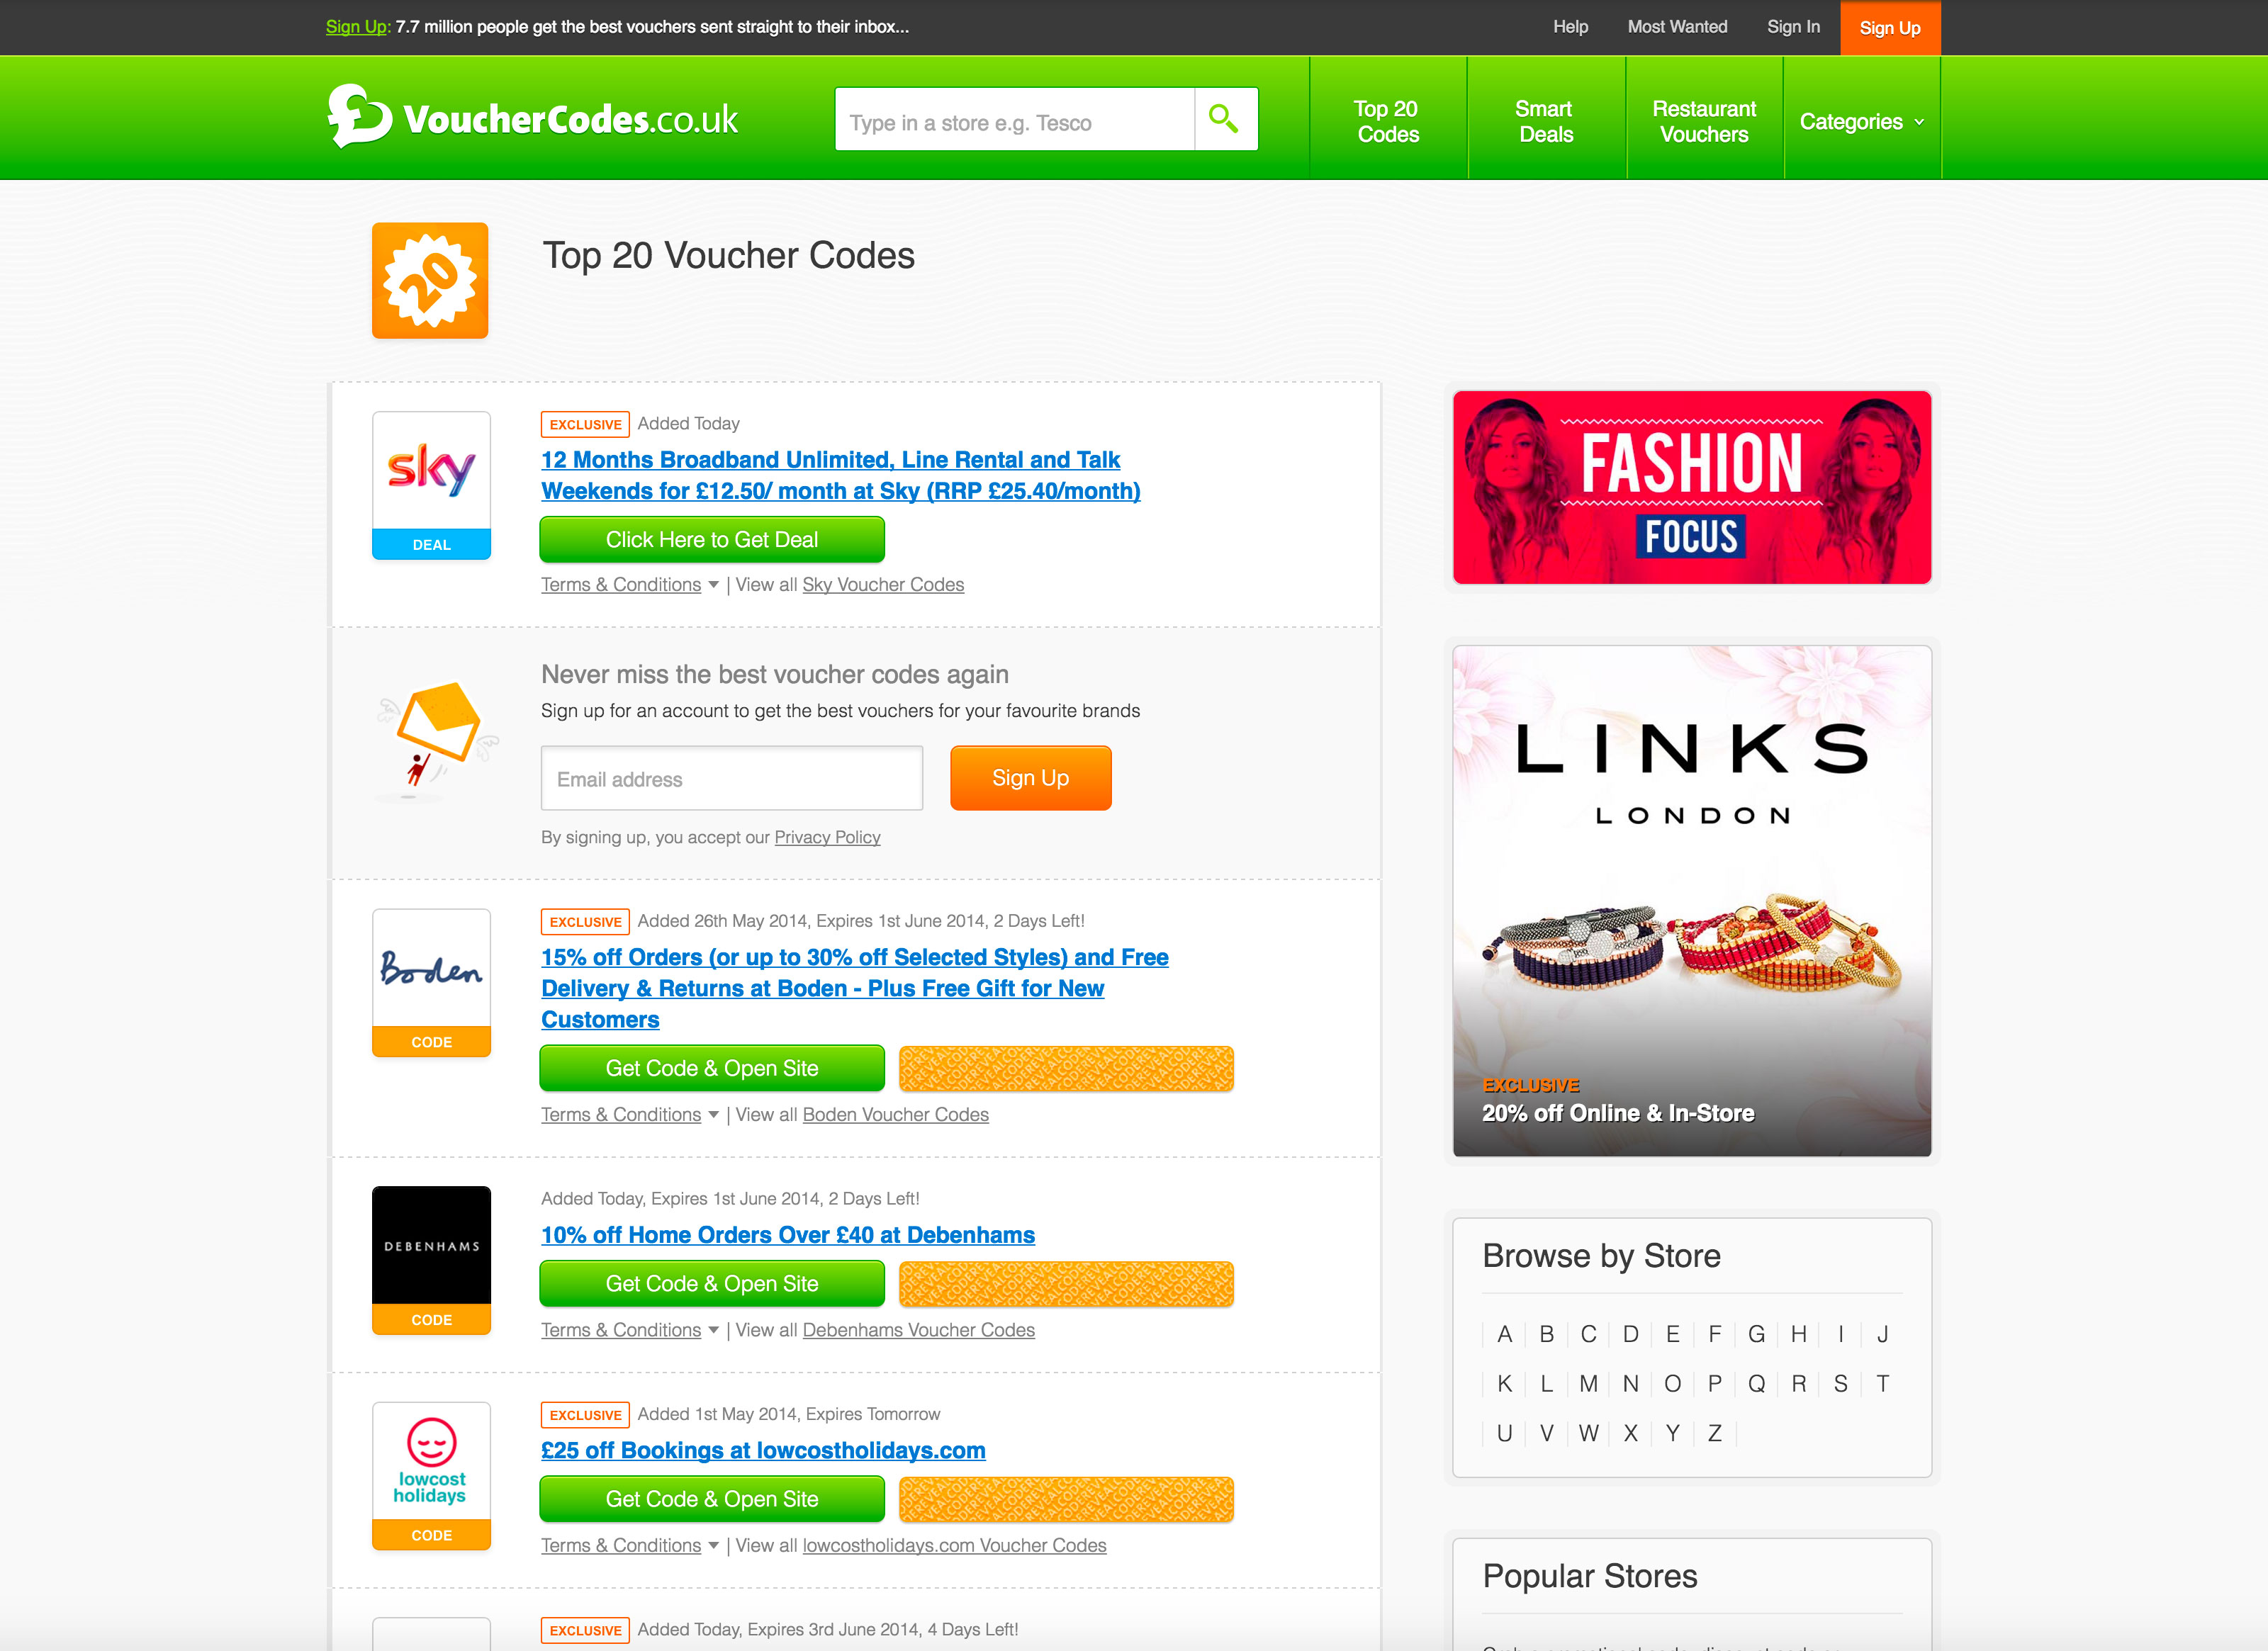 Screenshot of a Vouchercodes.co.uk listing page